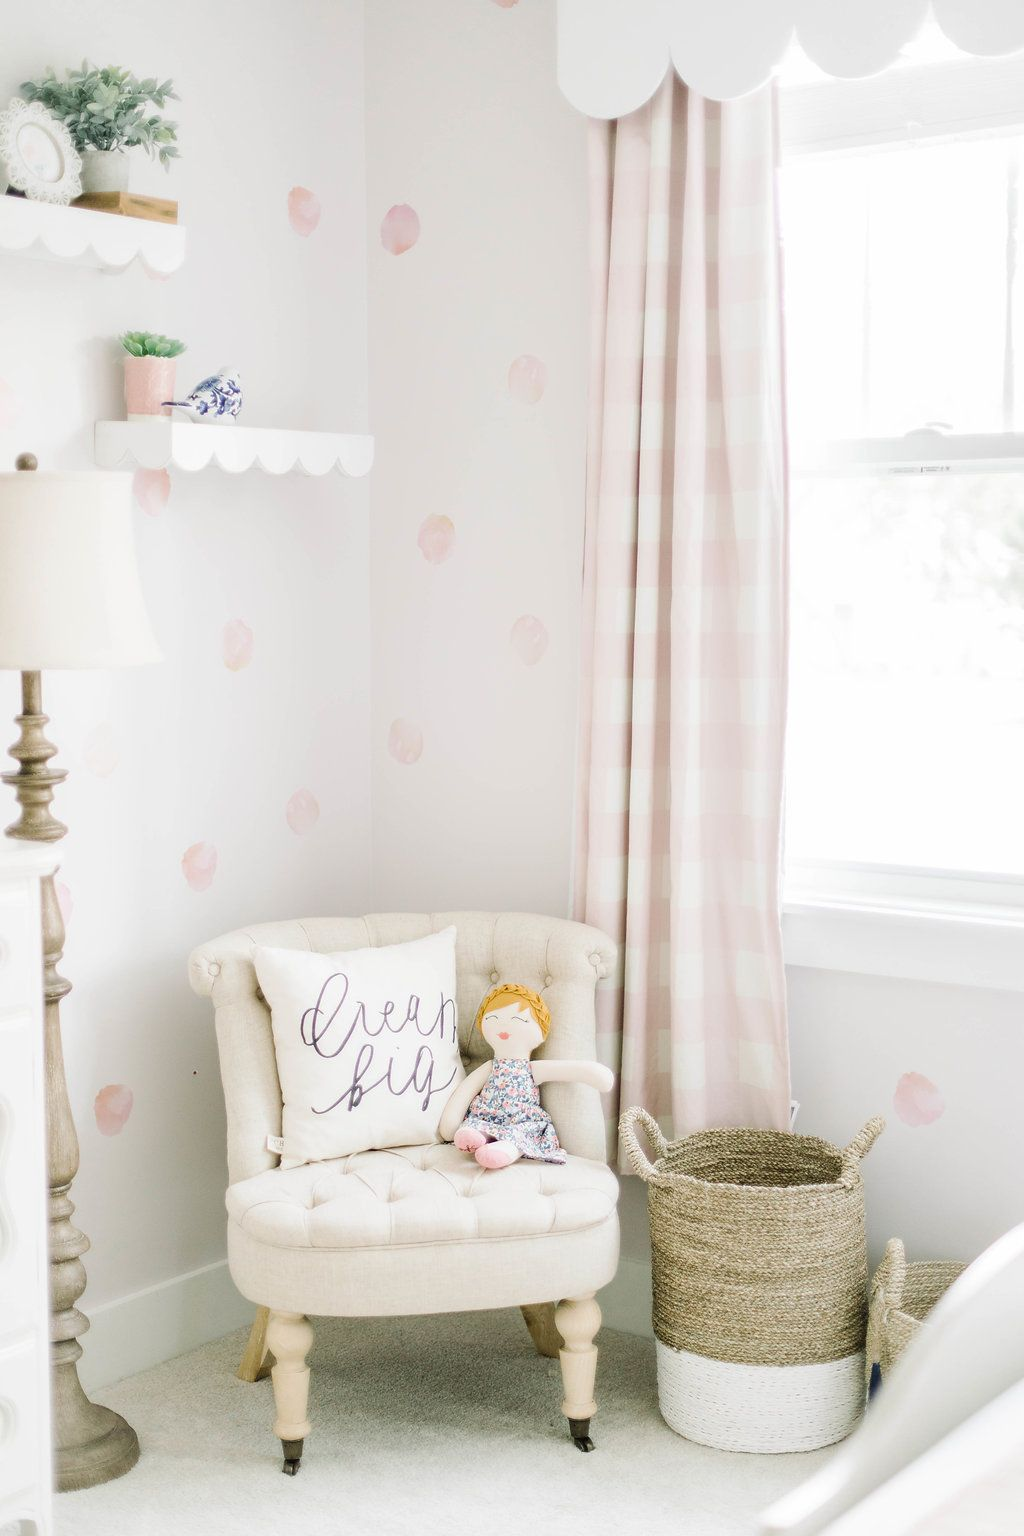 Big Girl Room Scalloped Shelves Gingham Print Watercolor Dots Wall Decals Pink Room Gingham Curtains Girls Room Wallpaper Pink Girl Room Girl Room